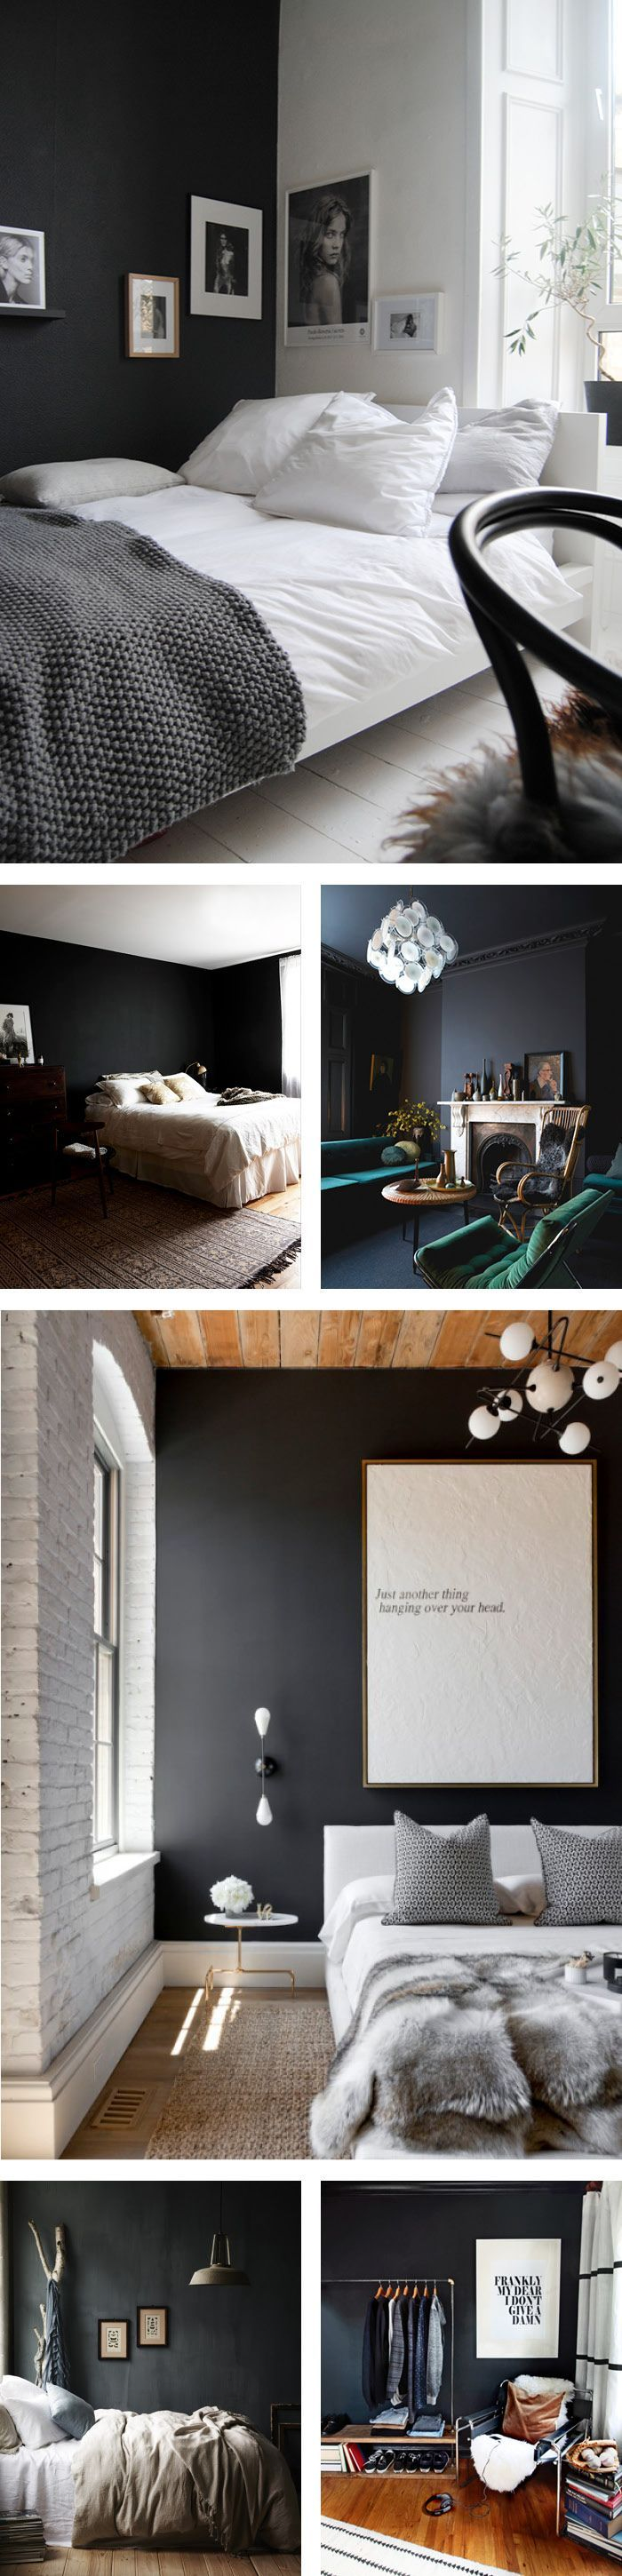 1000 ideen zu dunkle schlafzimmer auf pinterest. Black Bedroom Furniture Sets. Home Design Ideas